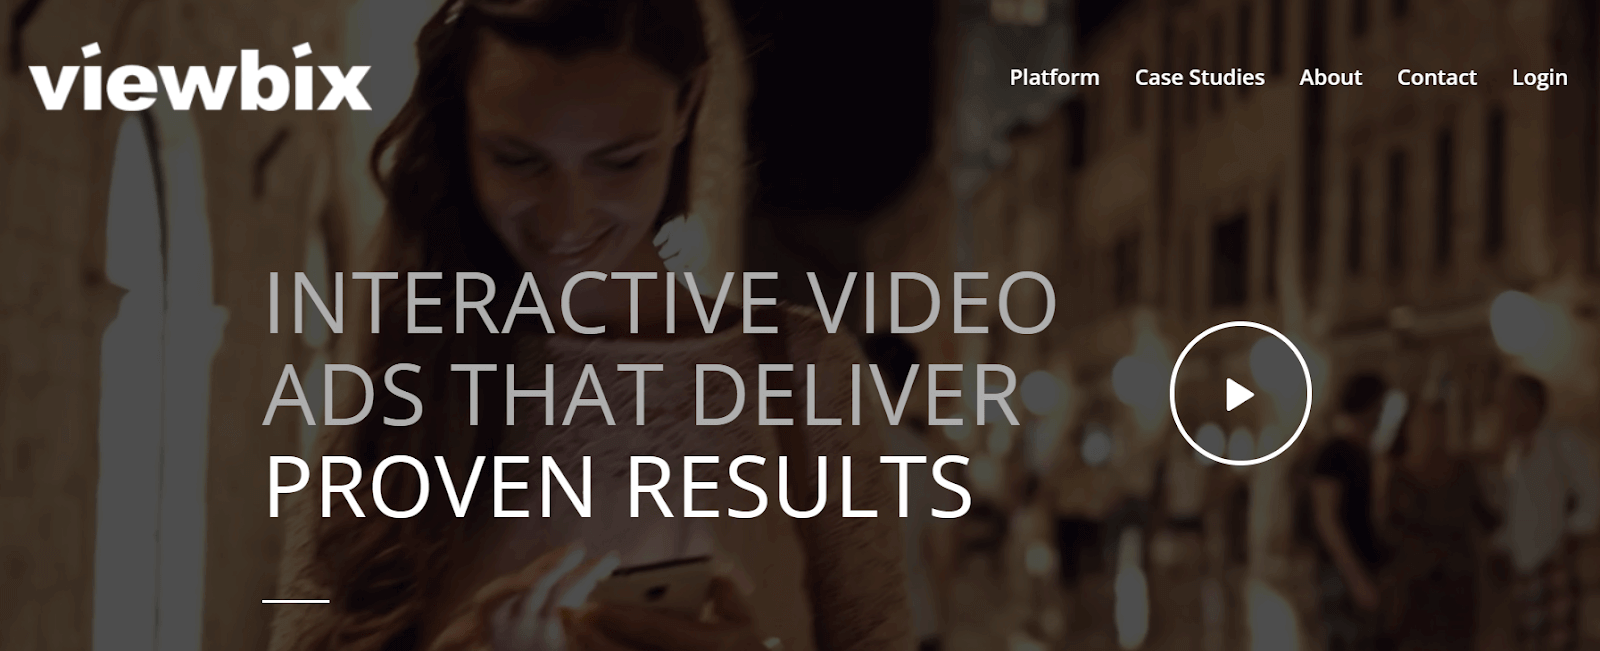 Viewbix Video Marketing Tool